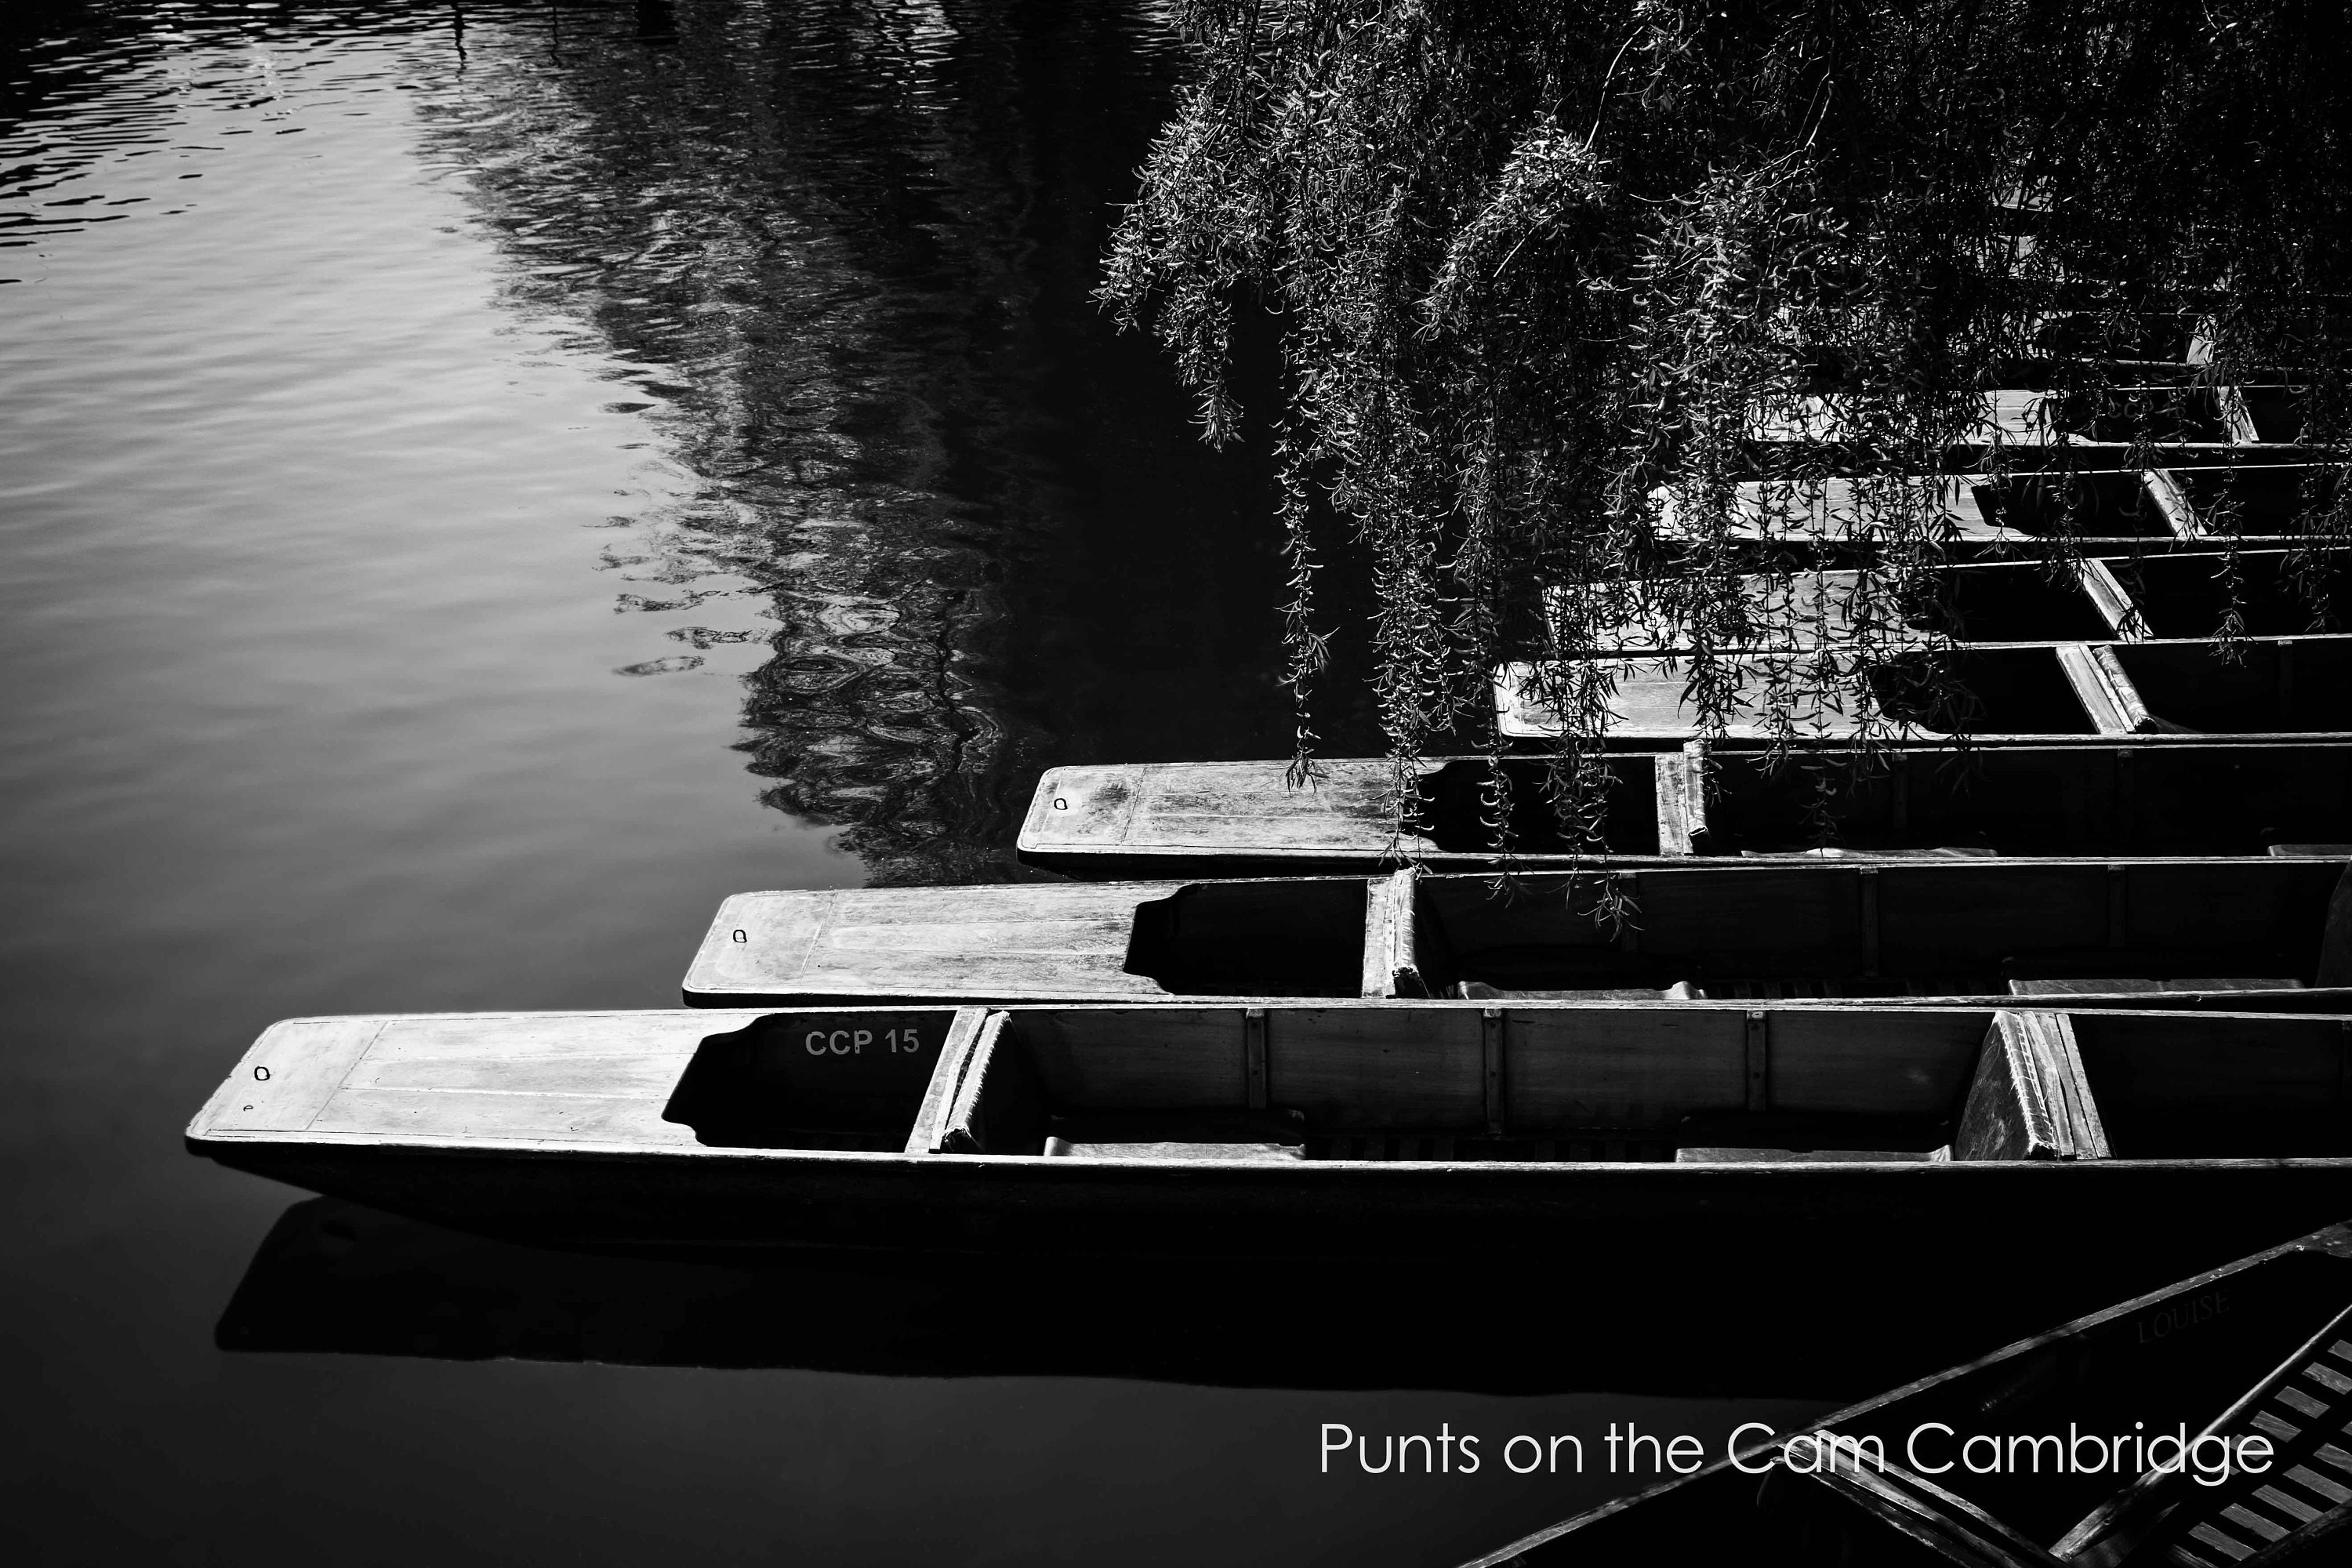 black and white prints of punts on the river cam in cambridge available unframed or ready to hang in custom sizes